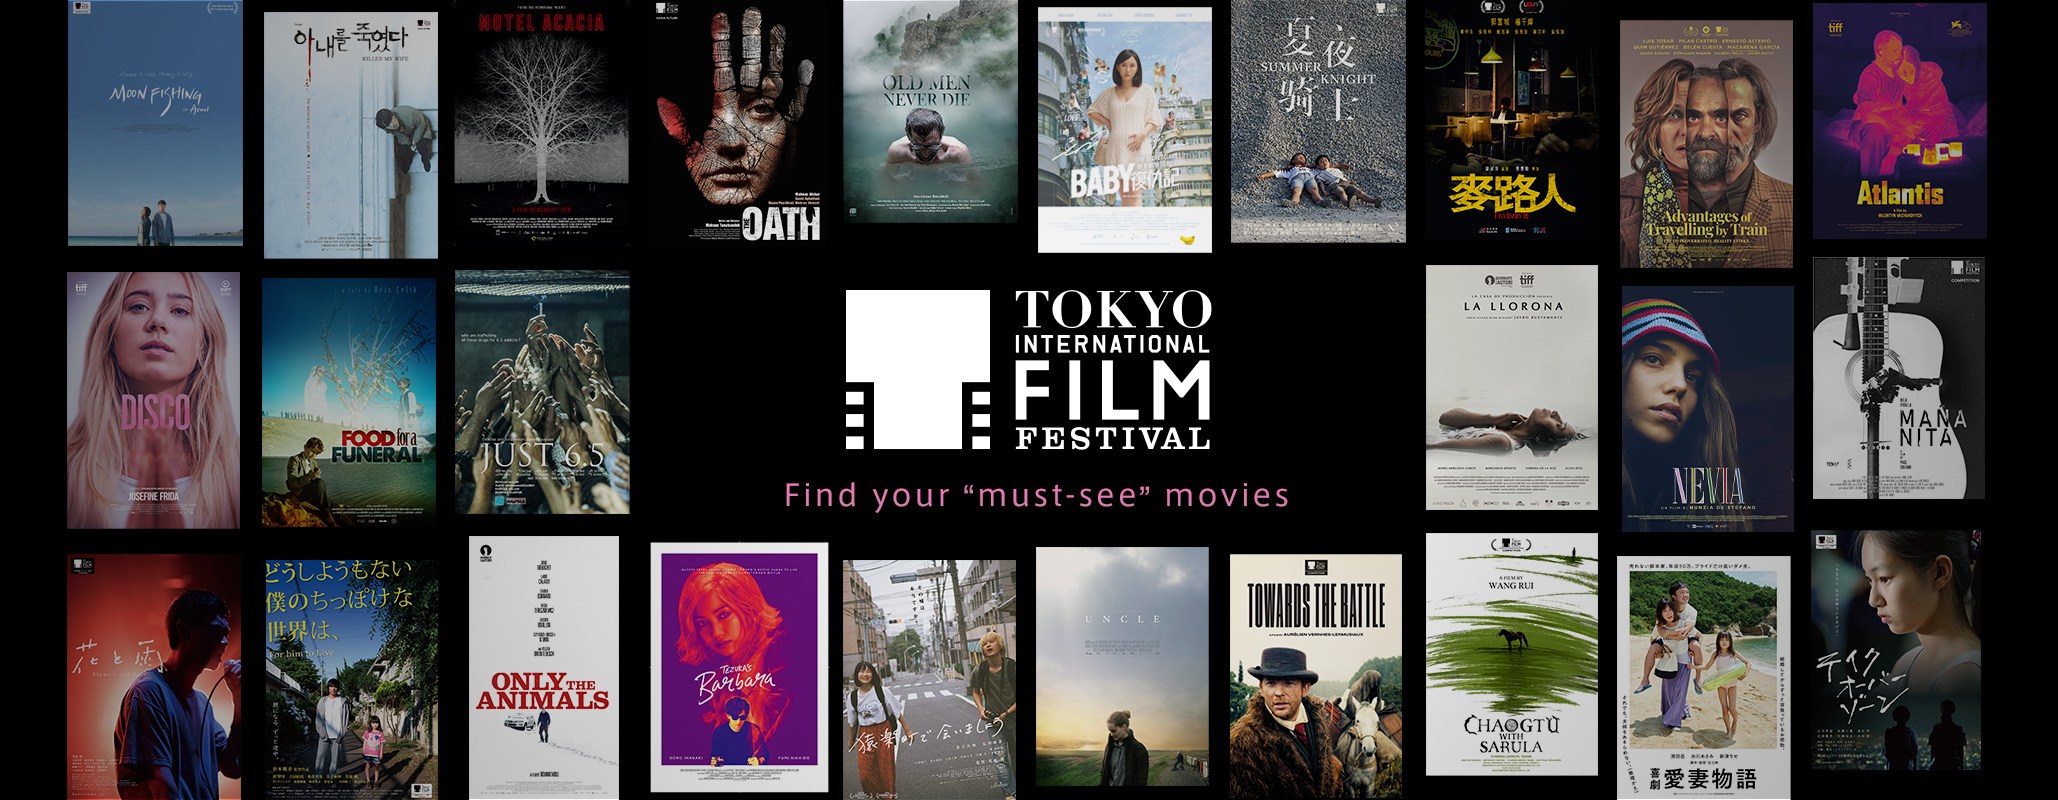 "Find your ""must-see"" movies"